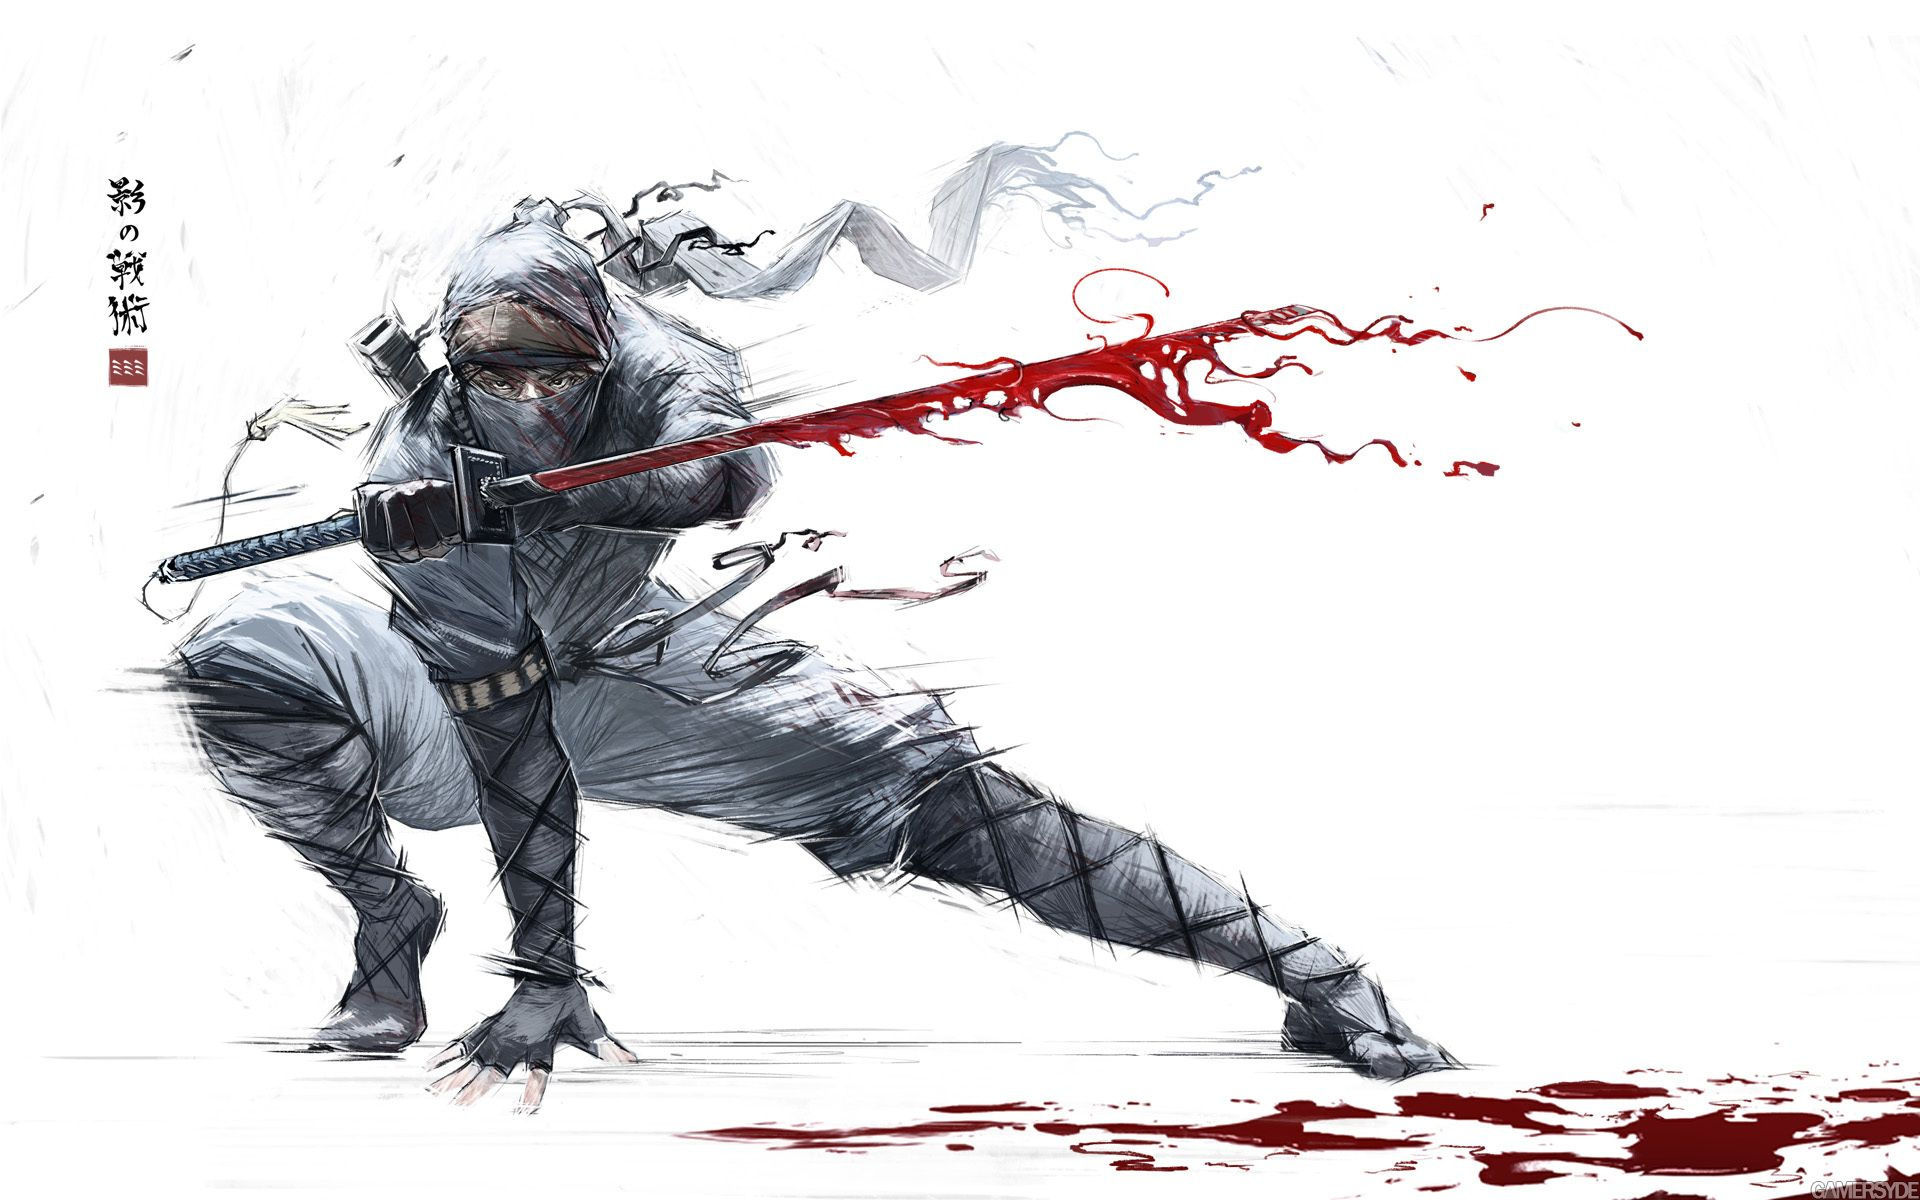 Pin by Vishnu Km on sketch in 2019 | Ninja art, Samurai